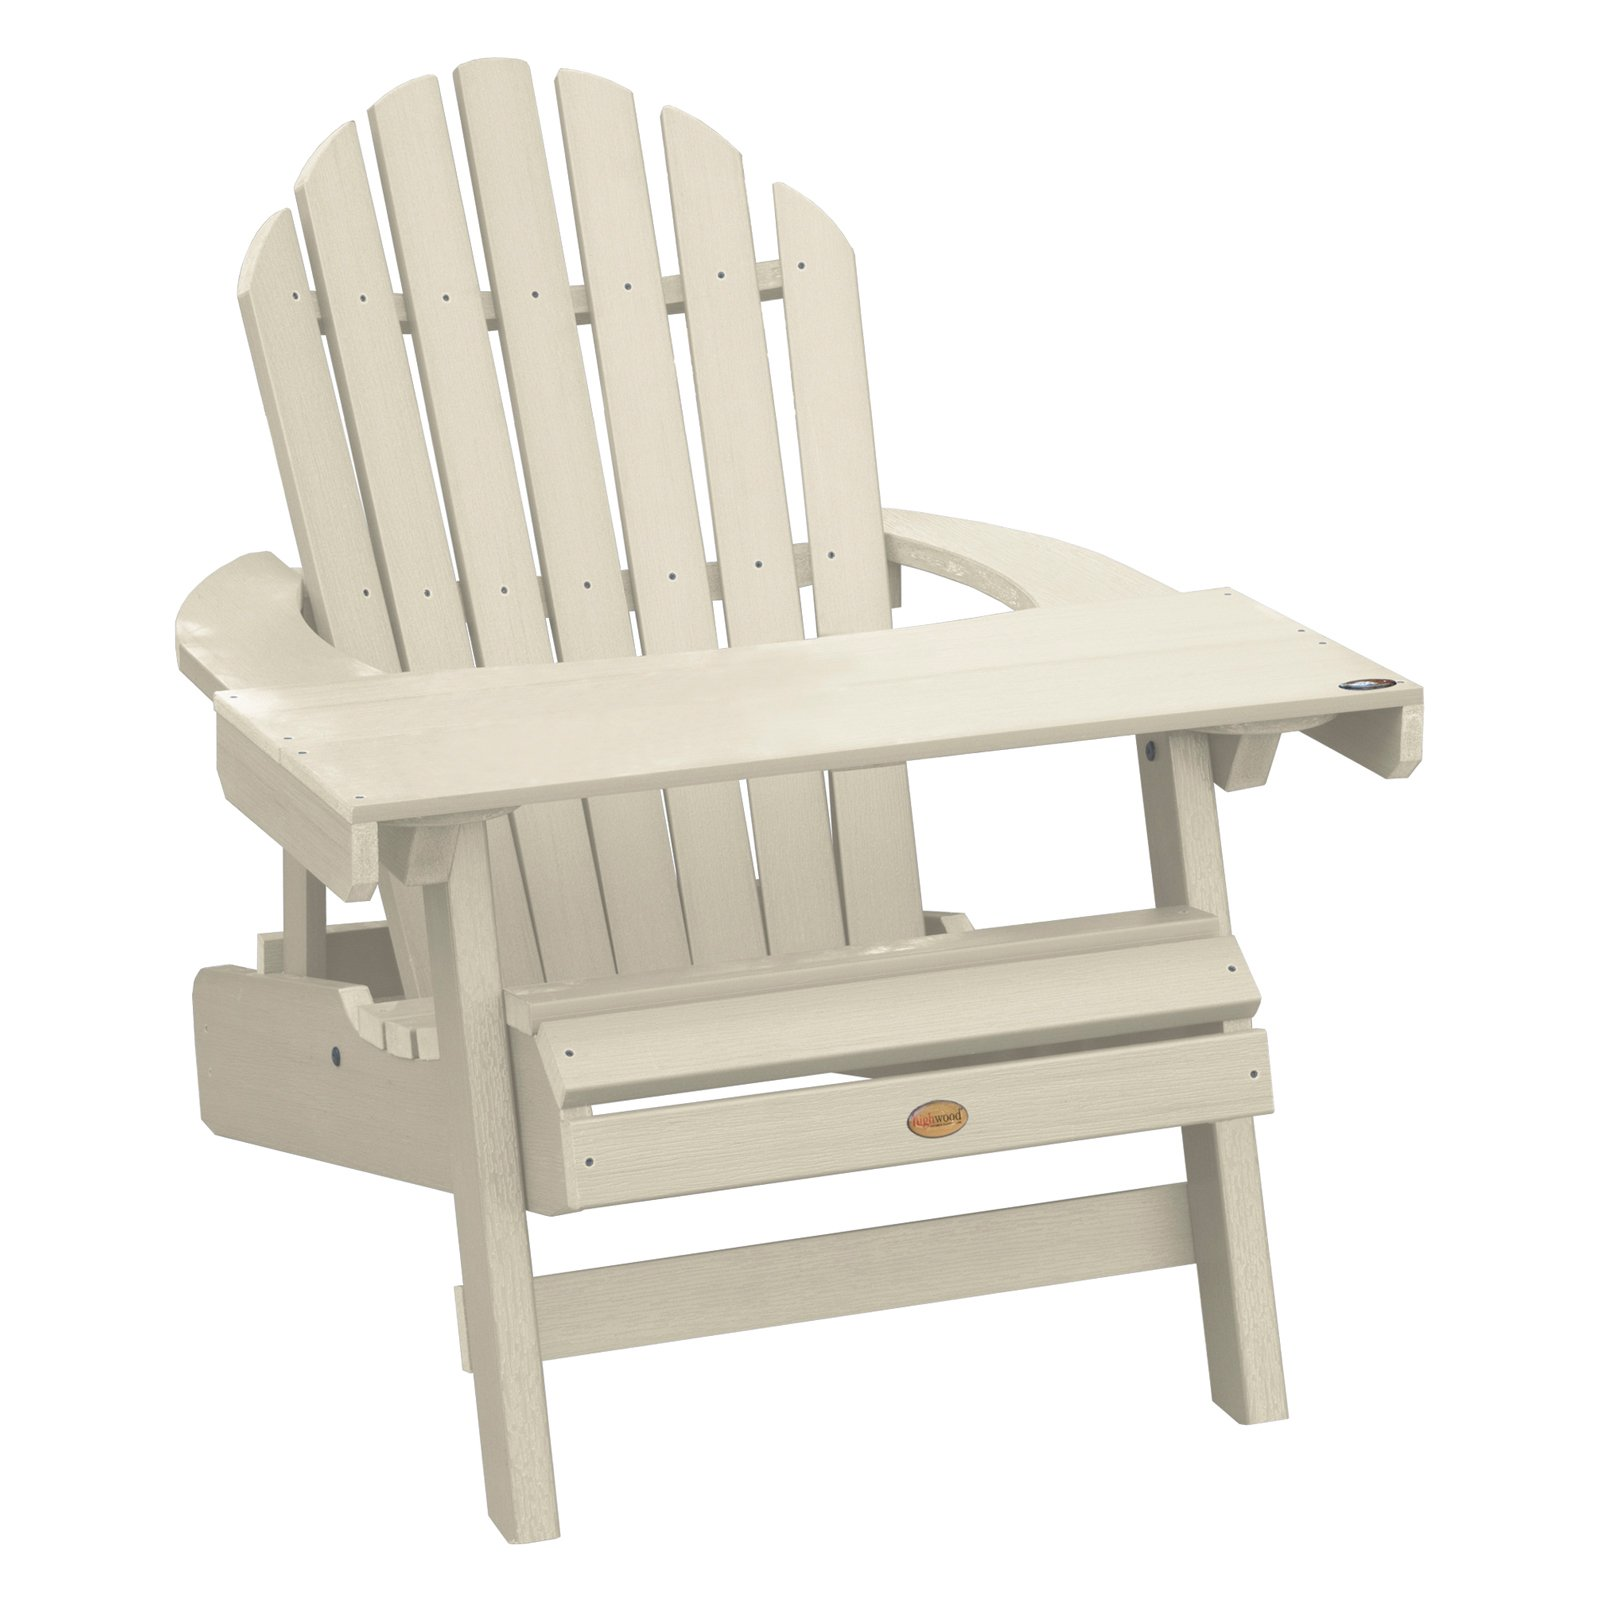 Outdoor Highwood Usa Hamilton Folding And Reclining Adirondack Chair